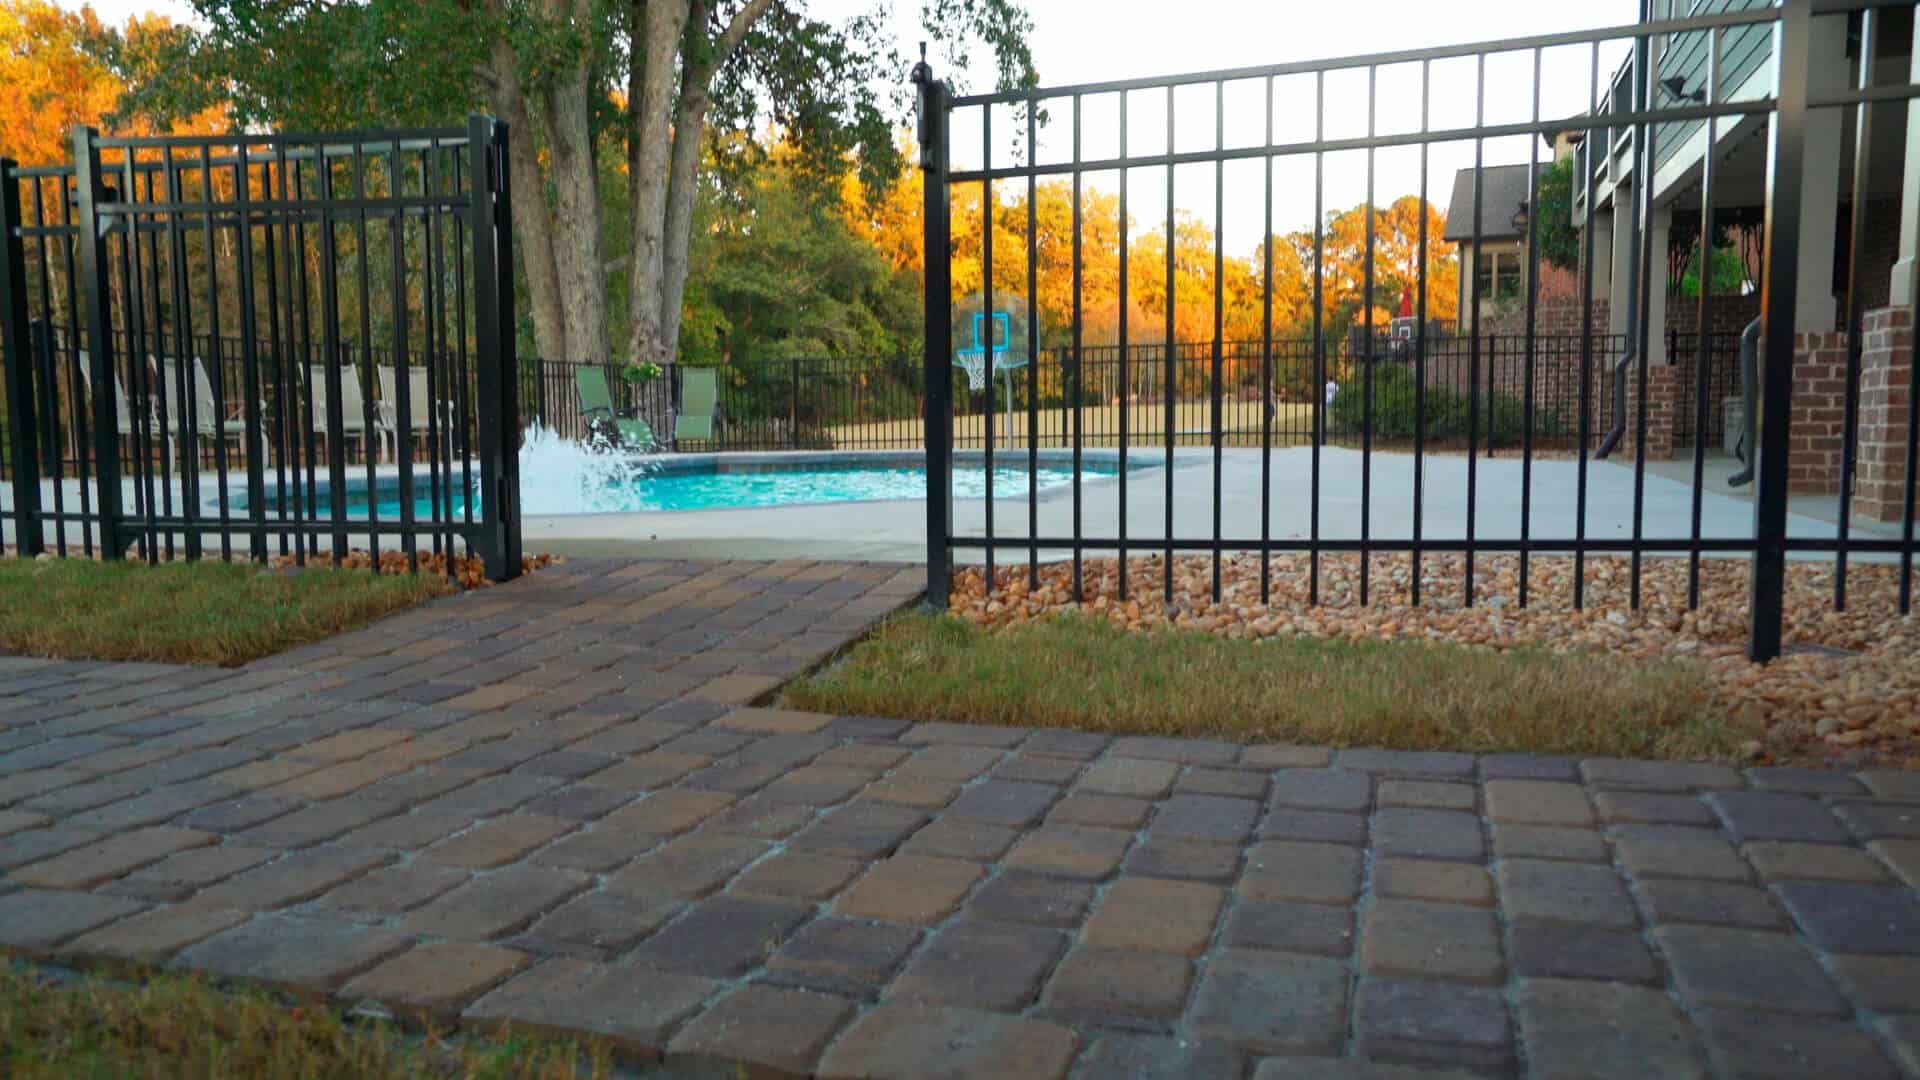 Paver walkway to a pool is a simple DIY project to connect your backyard spaces.